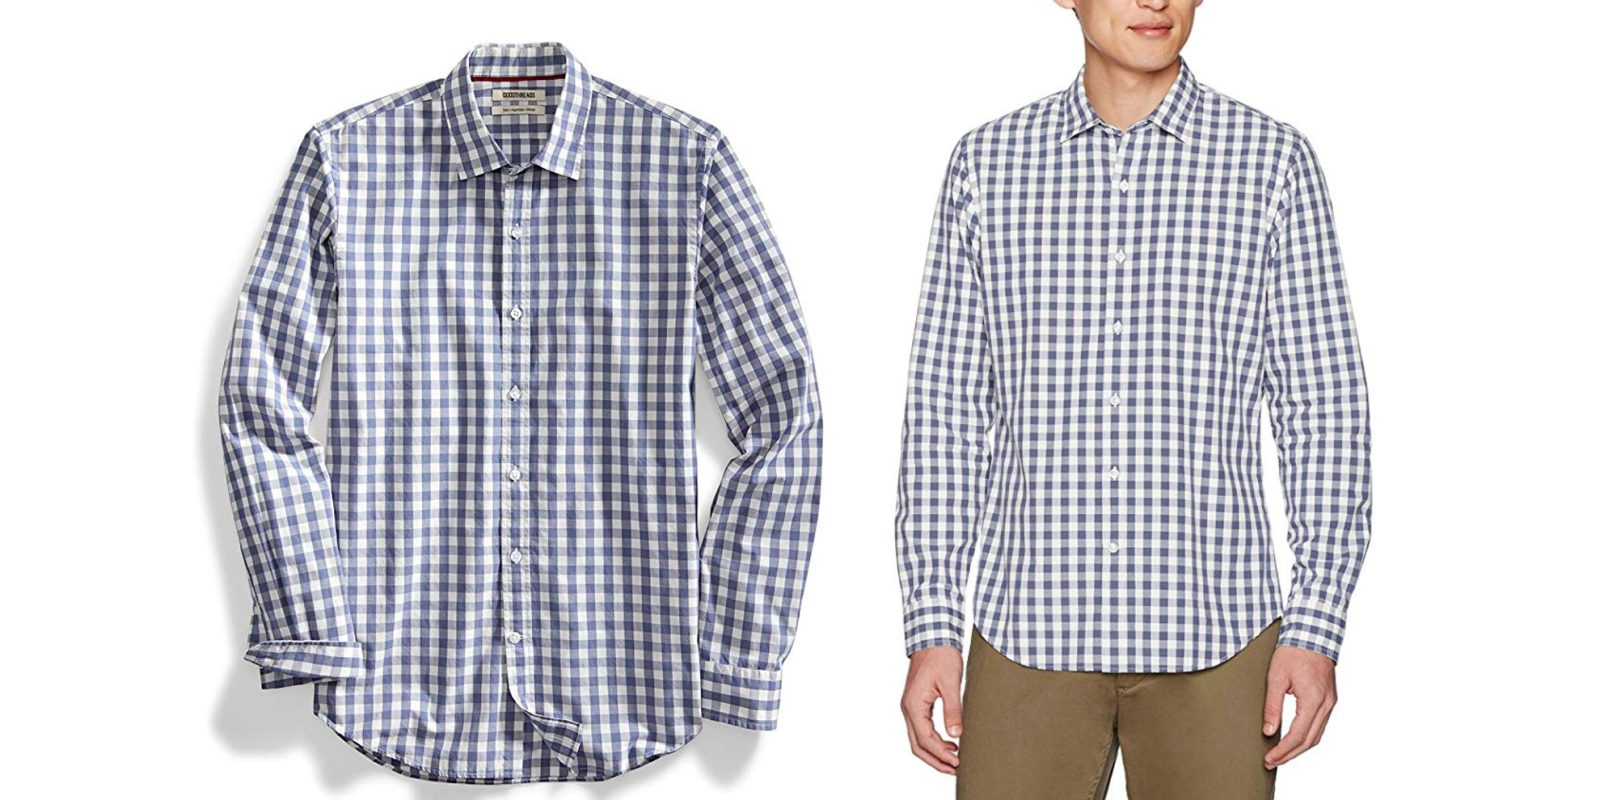 8d19df813e5e7 Amazon's Goodthreads offers its men's Gingham Poplin Shirt for $21 Prime  shipped